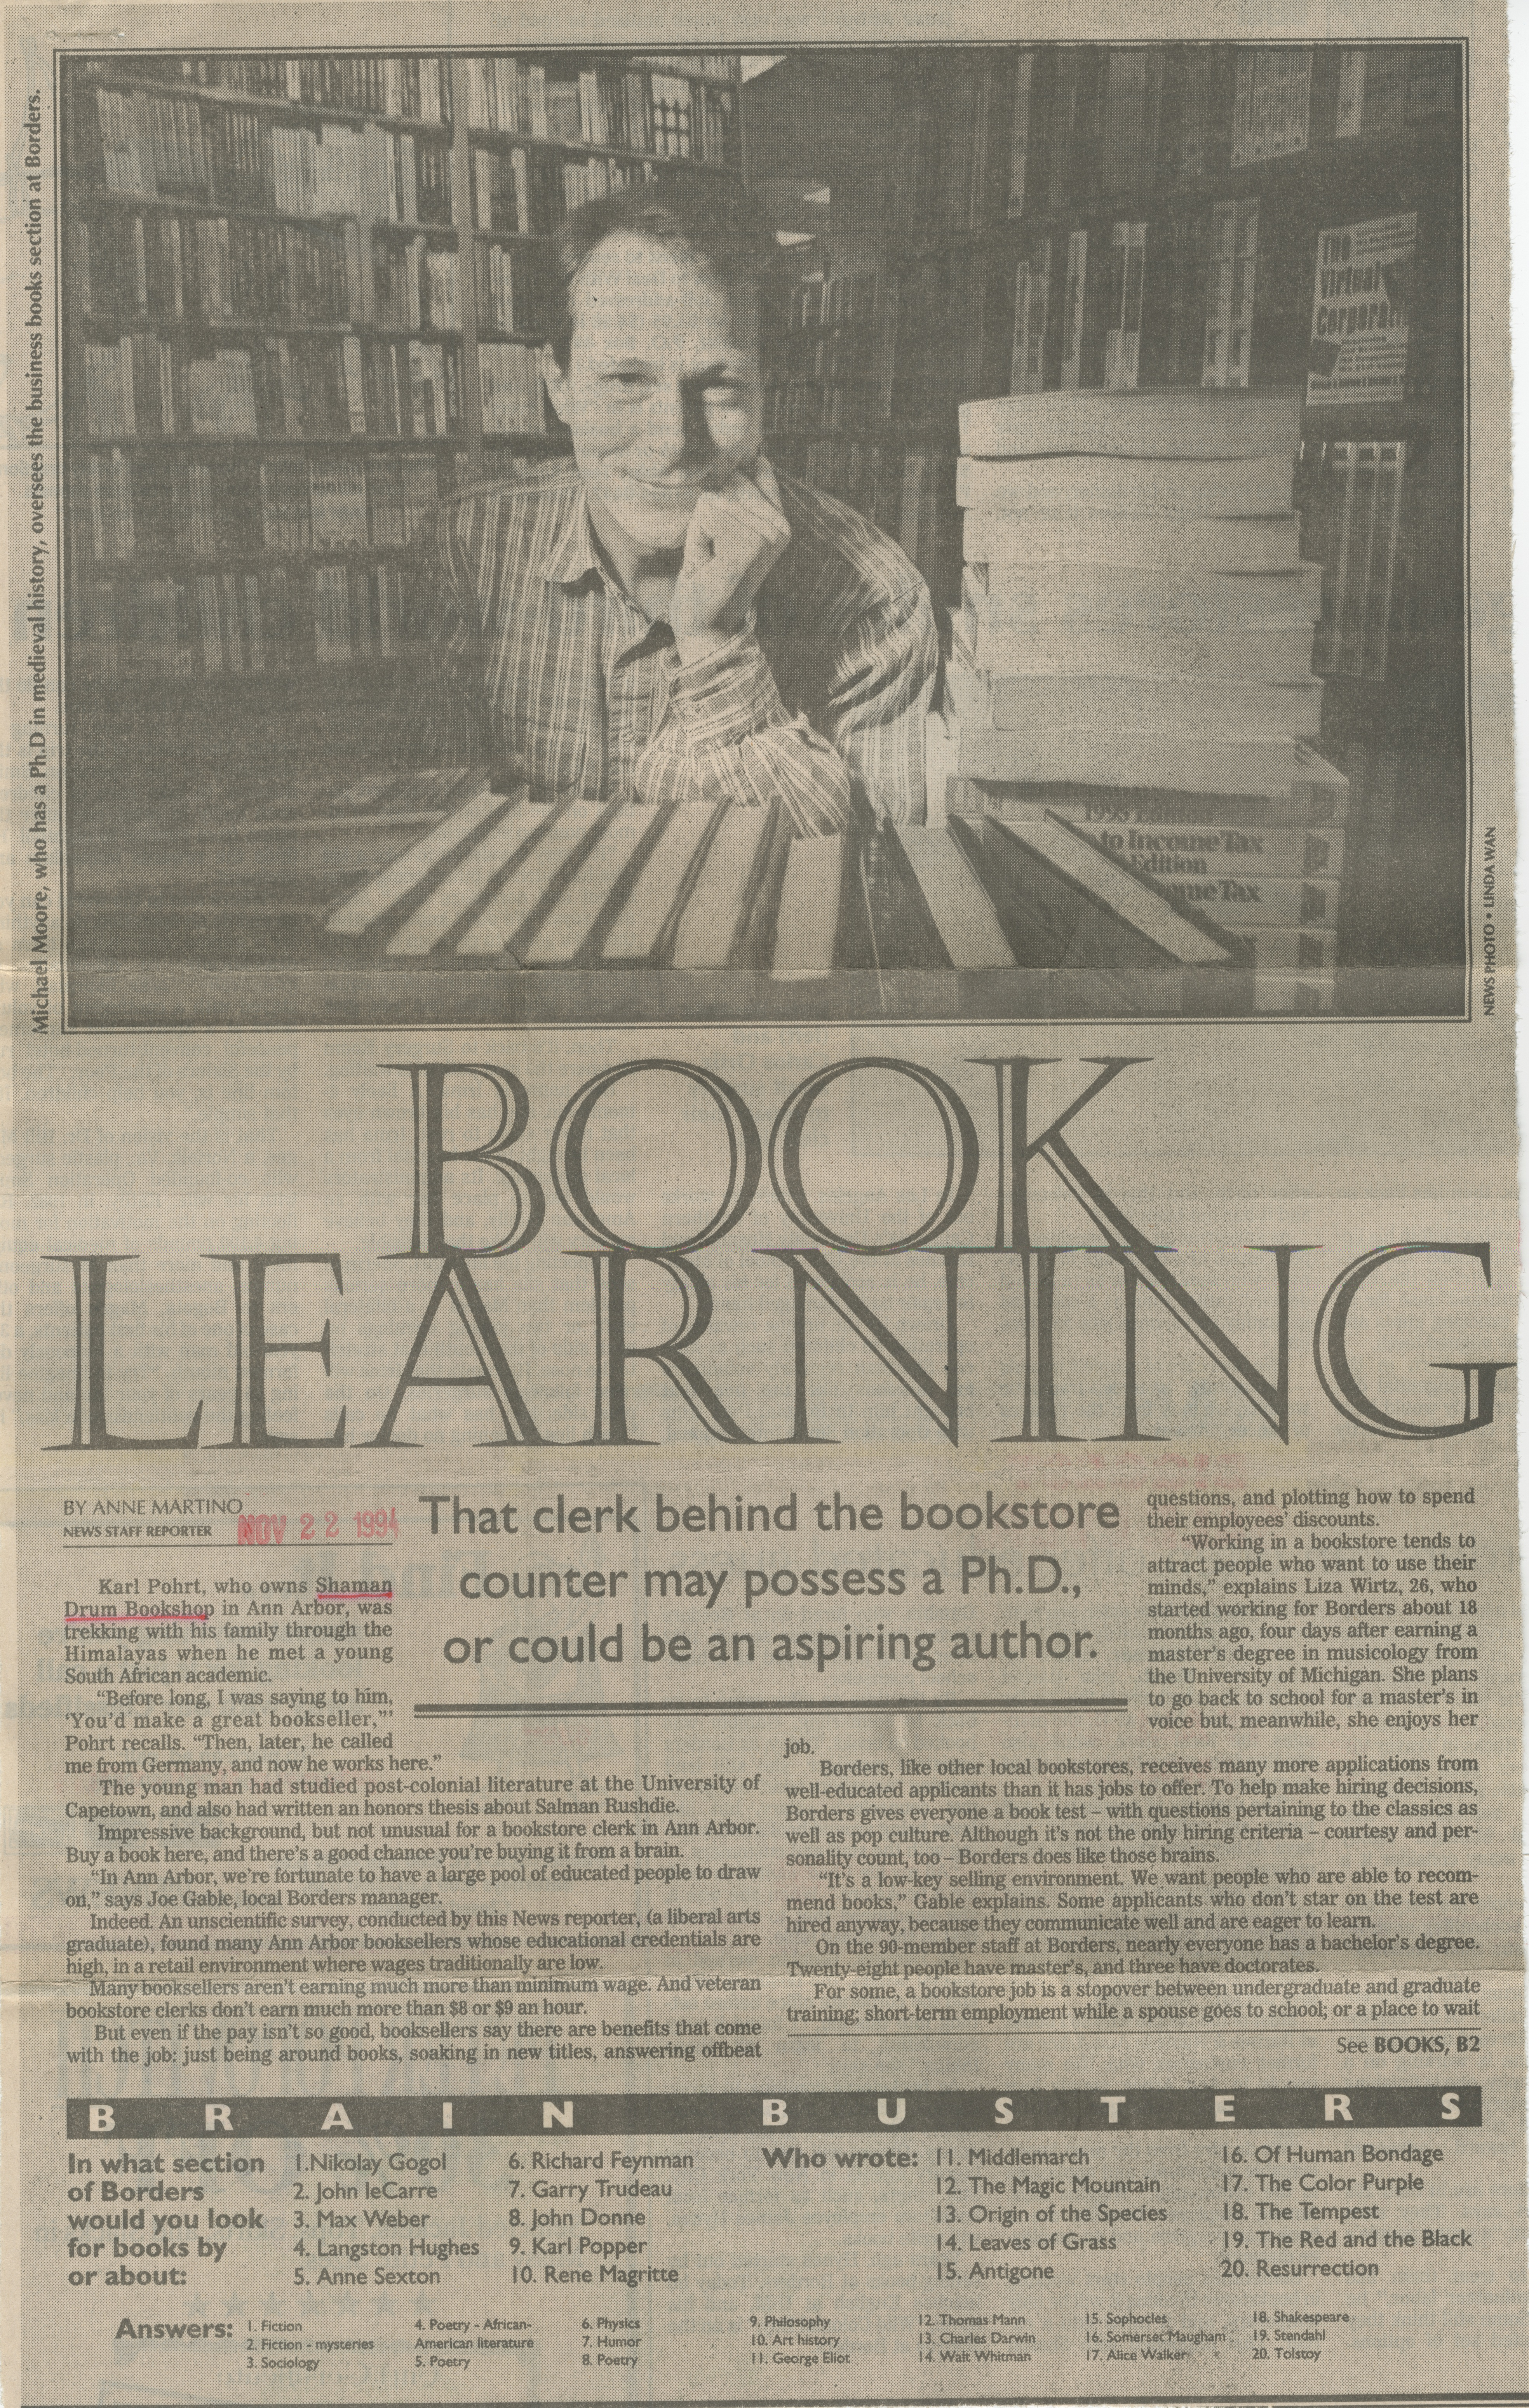 Book Learning image